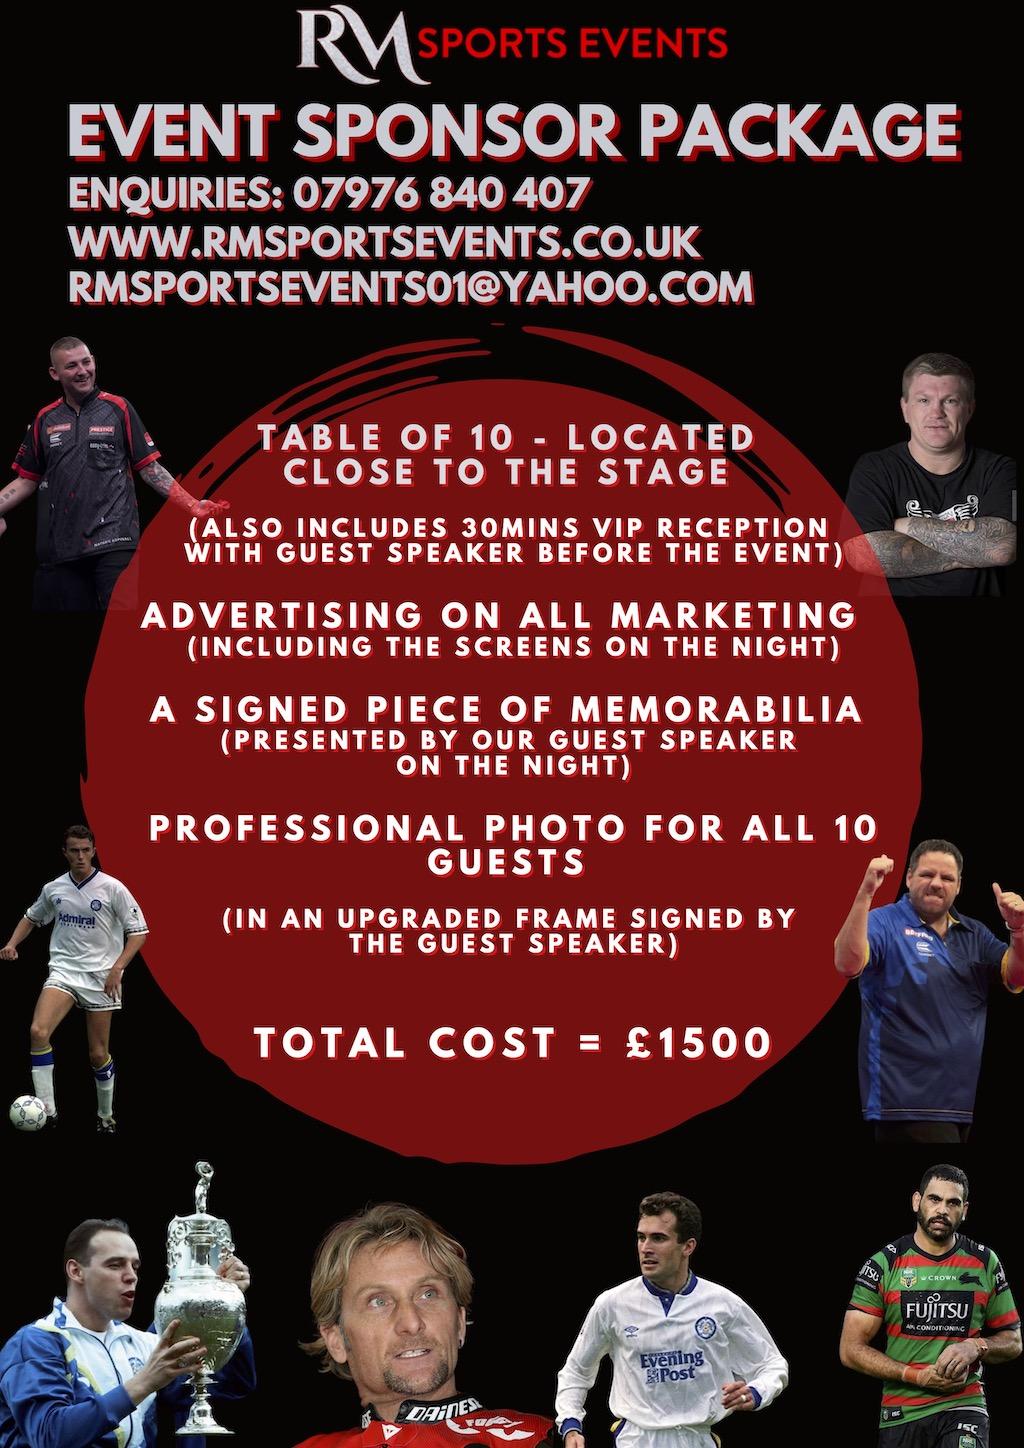 RM Sports Events